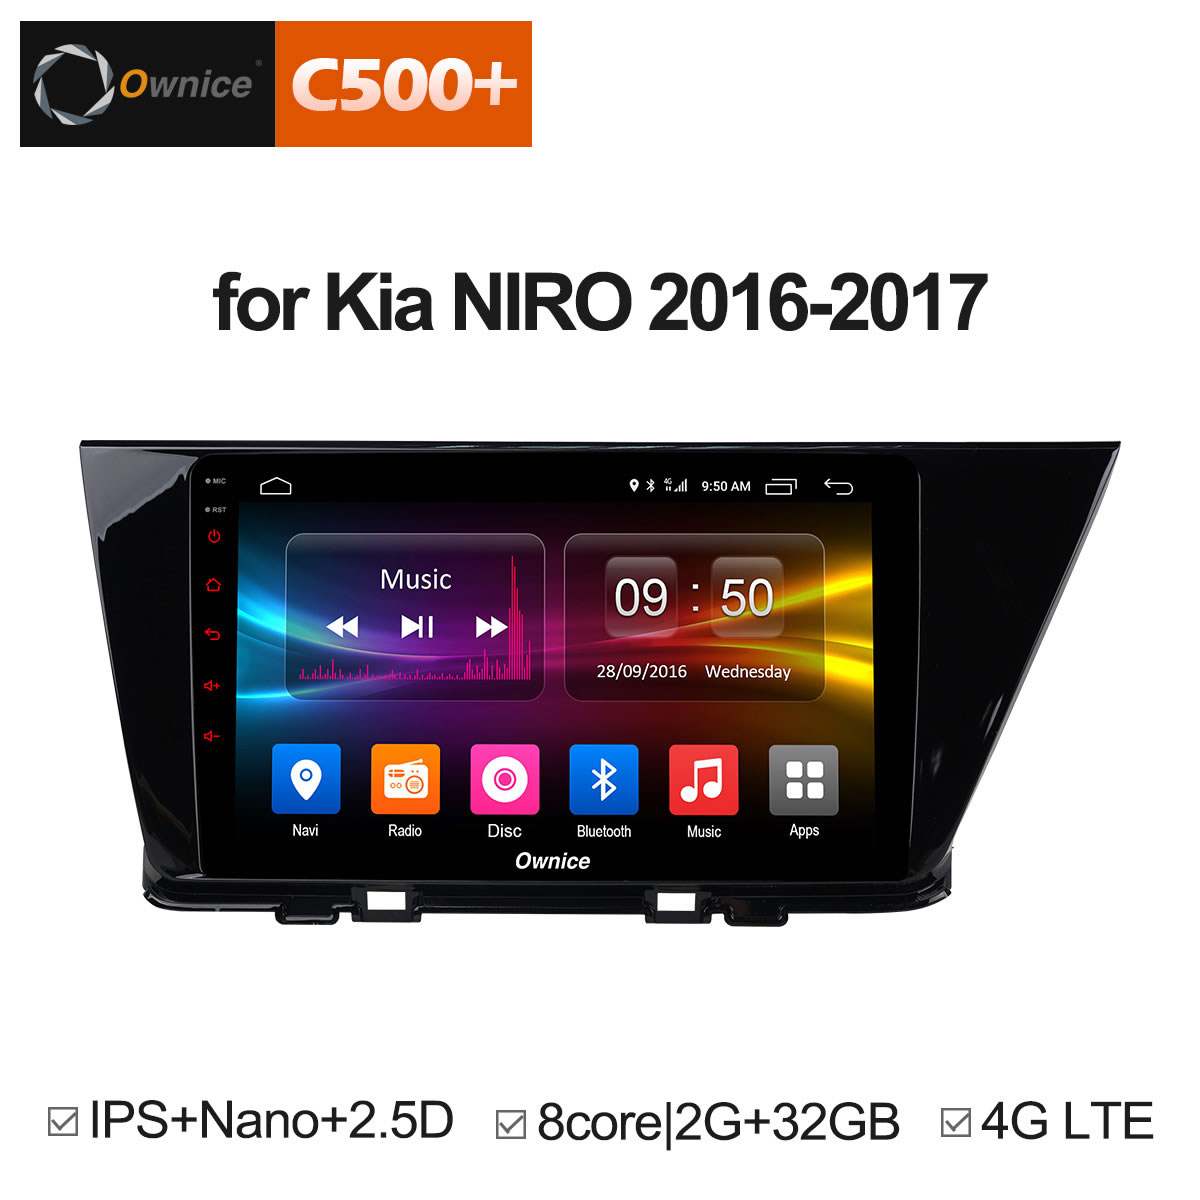 Ownice C500+ G10 Android 8.1 Octa 8 Core ROM 32G for KIA NIRO 2016 2017 Car DVD Player Navigation GPS Radio Support 4G LTE DVR ownice c500 g10 octa core 2gb ram 32g rom android car dvd 8 1 gps for mazda 6 summit 2009 2015 wifi 4g lte radio dab dvr